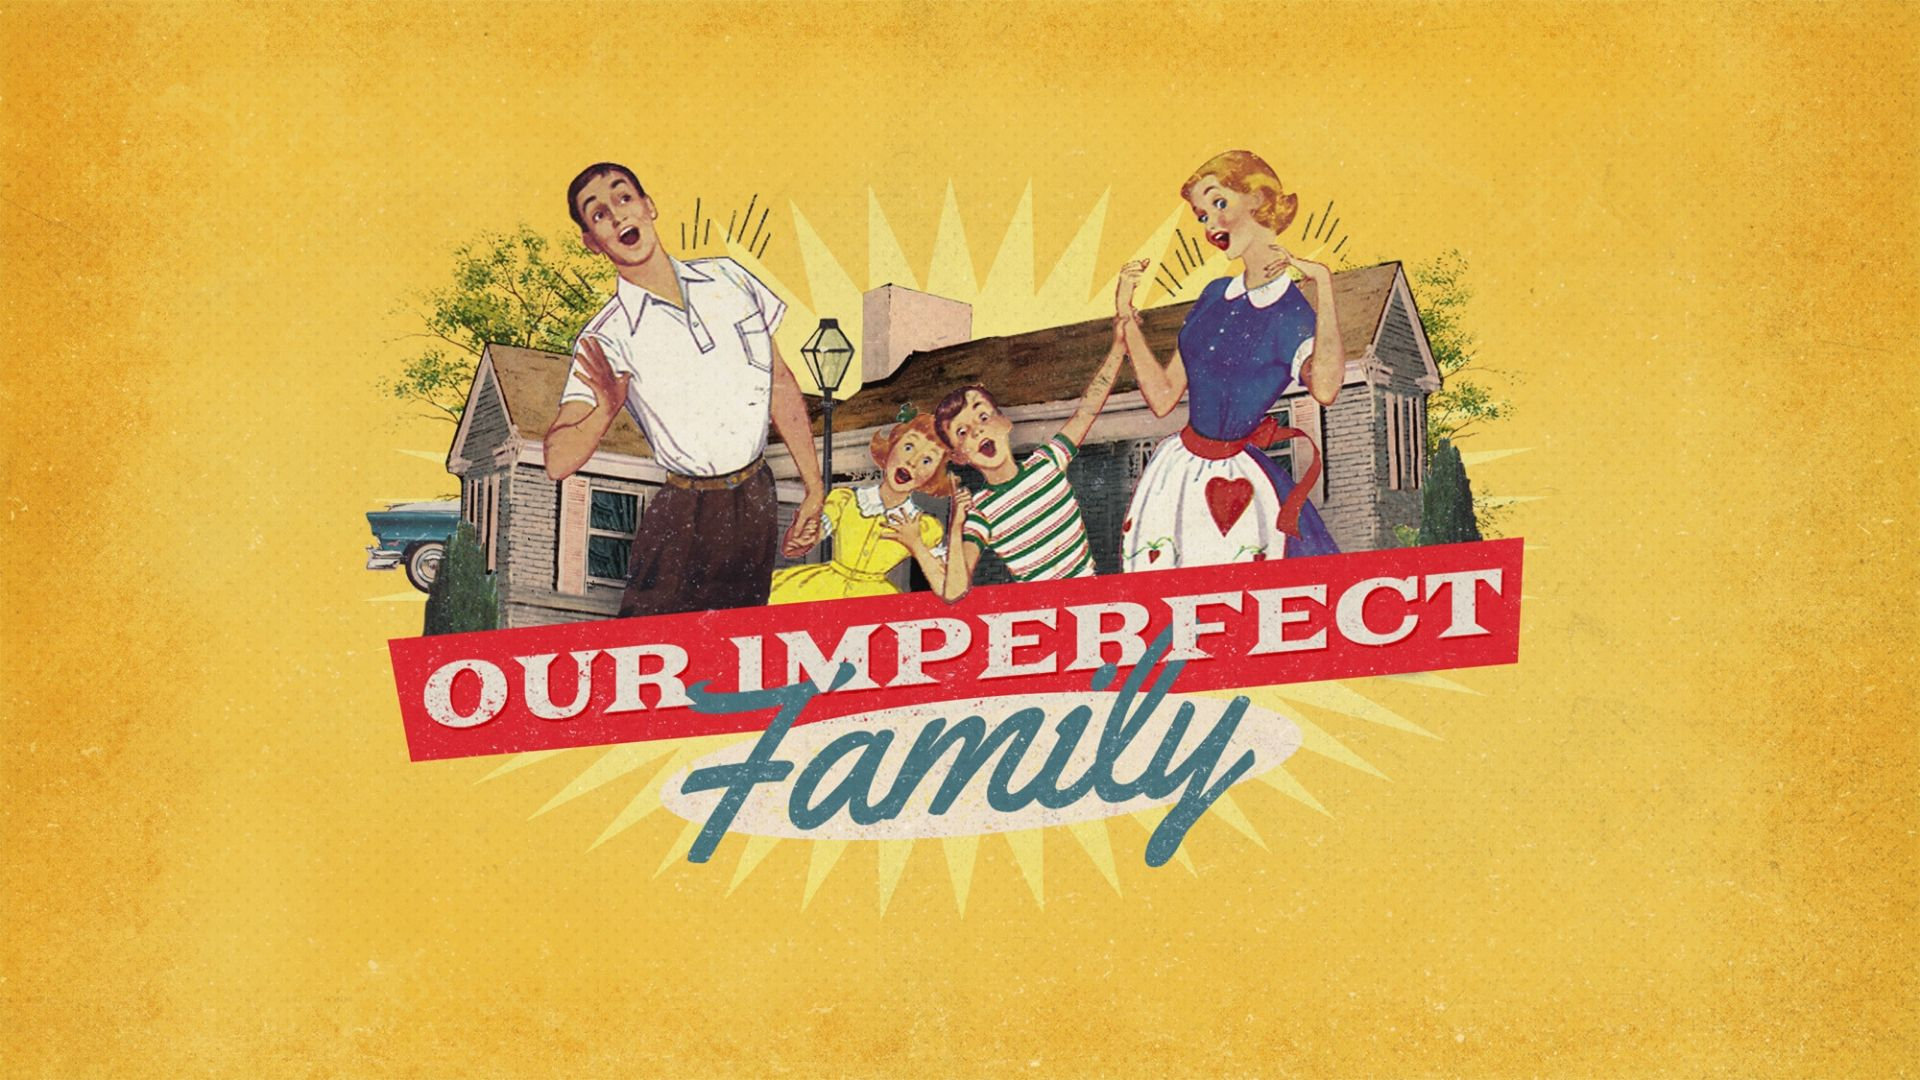 Our Imperfect Family Cover Art